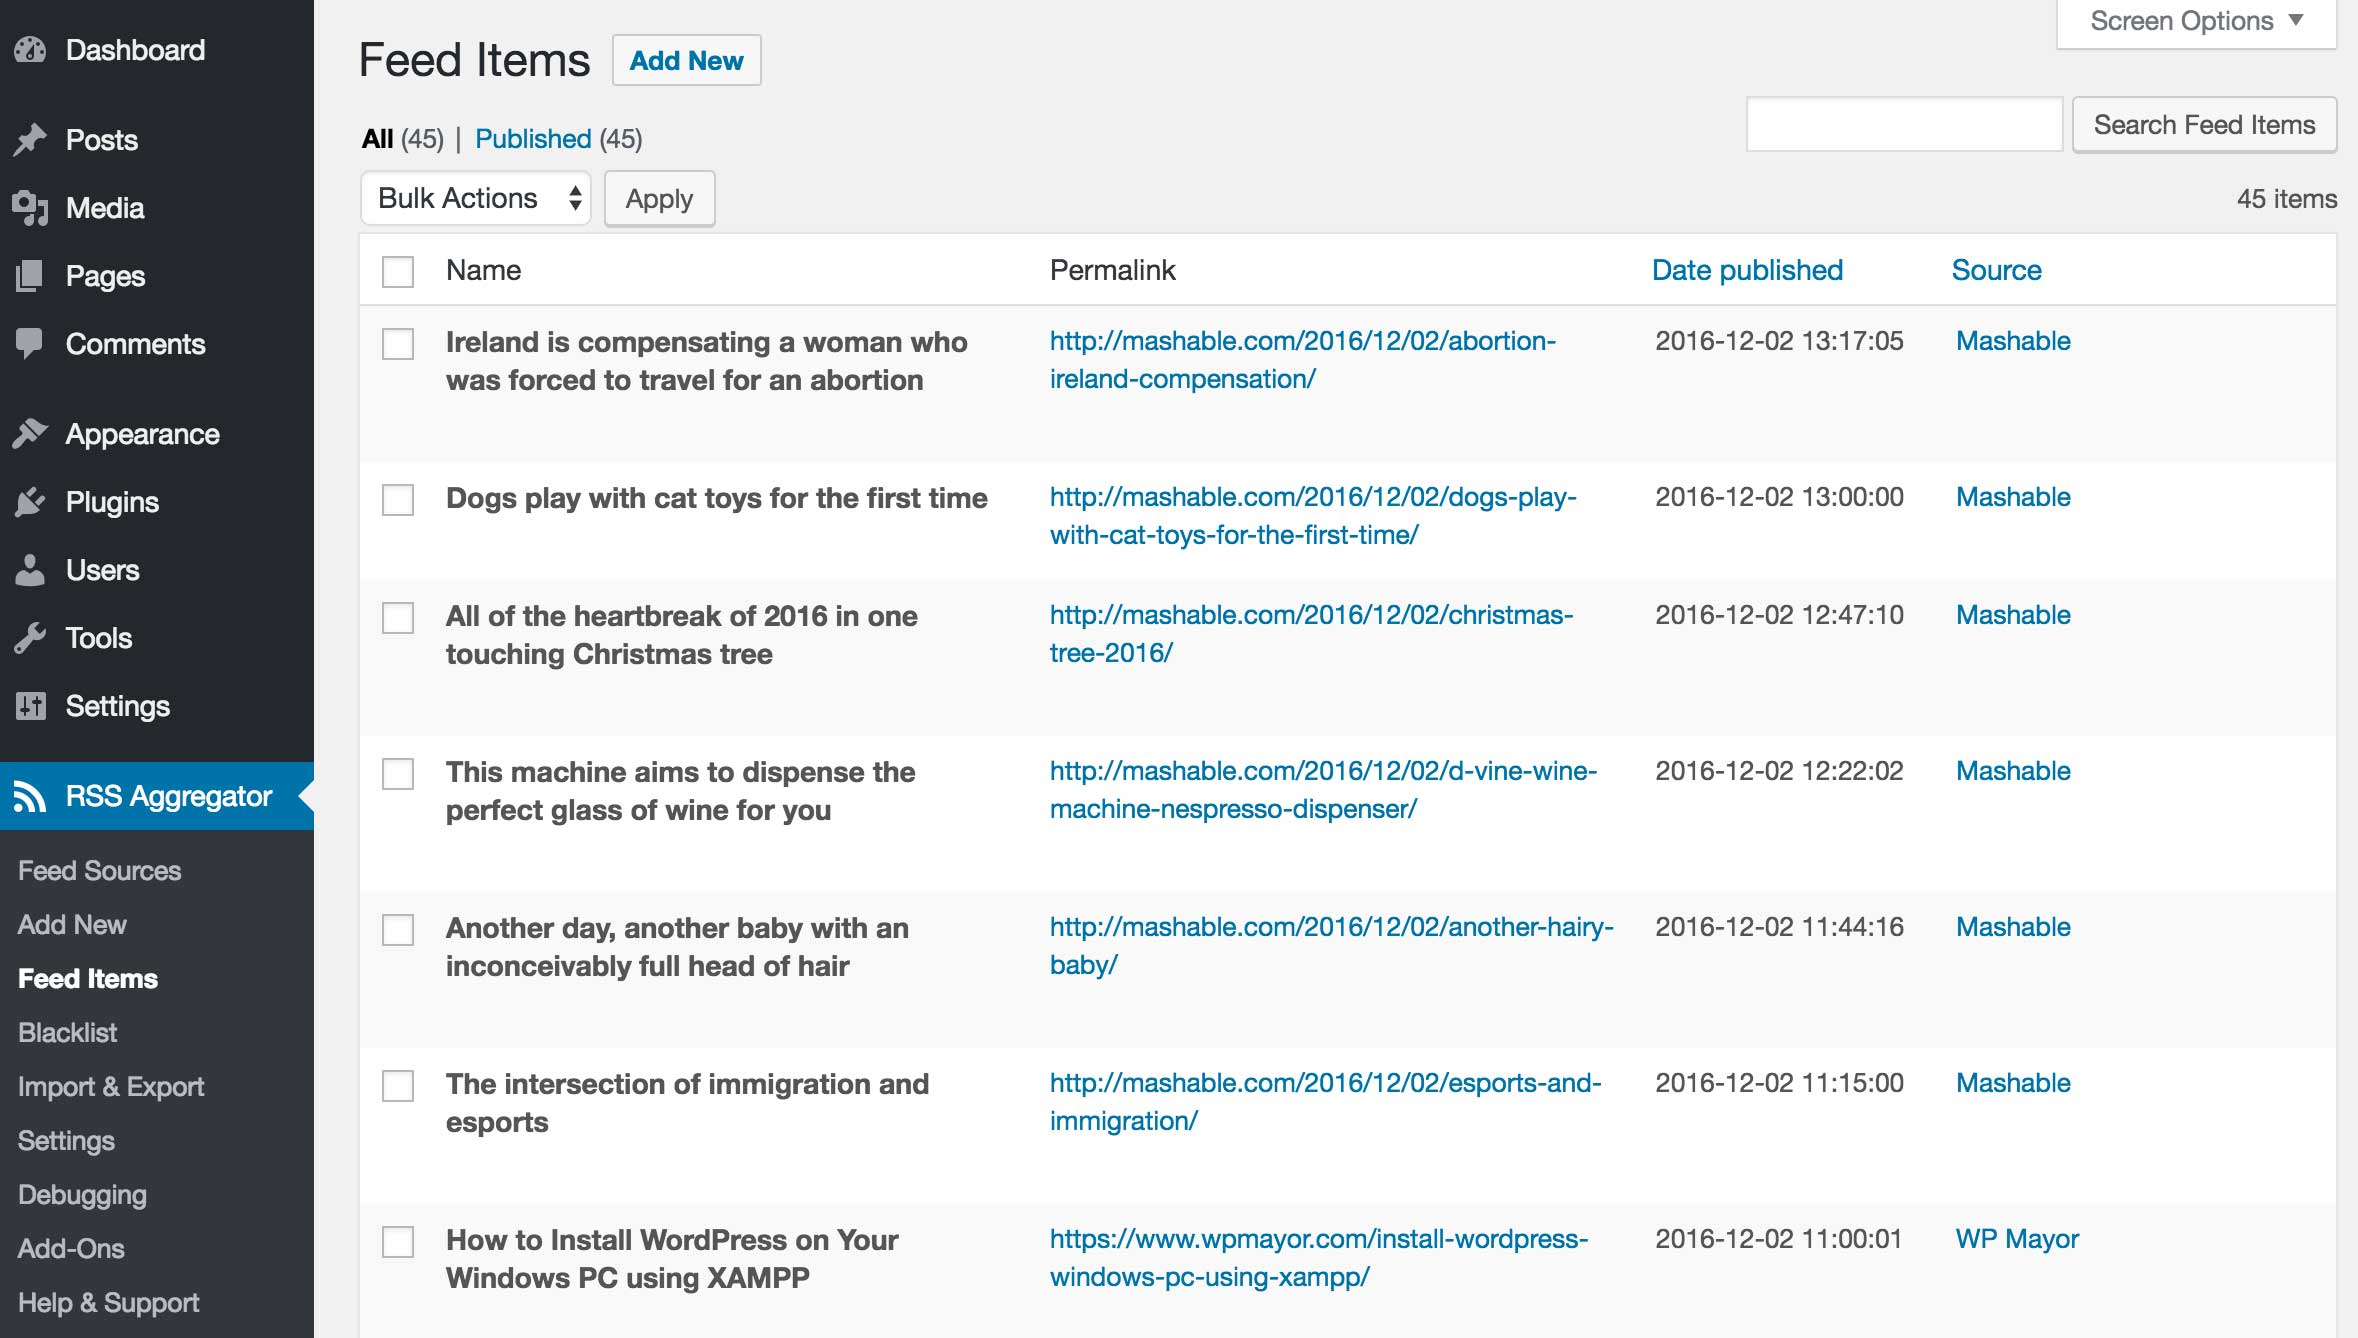 WP RSS Aggregator: Feed Items